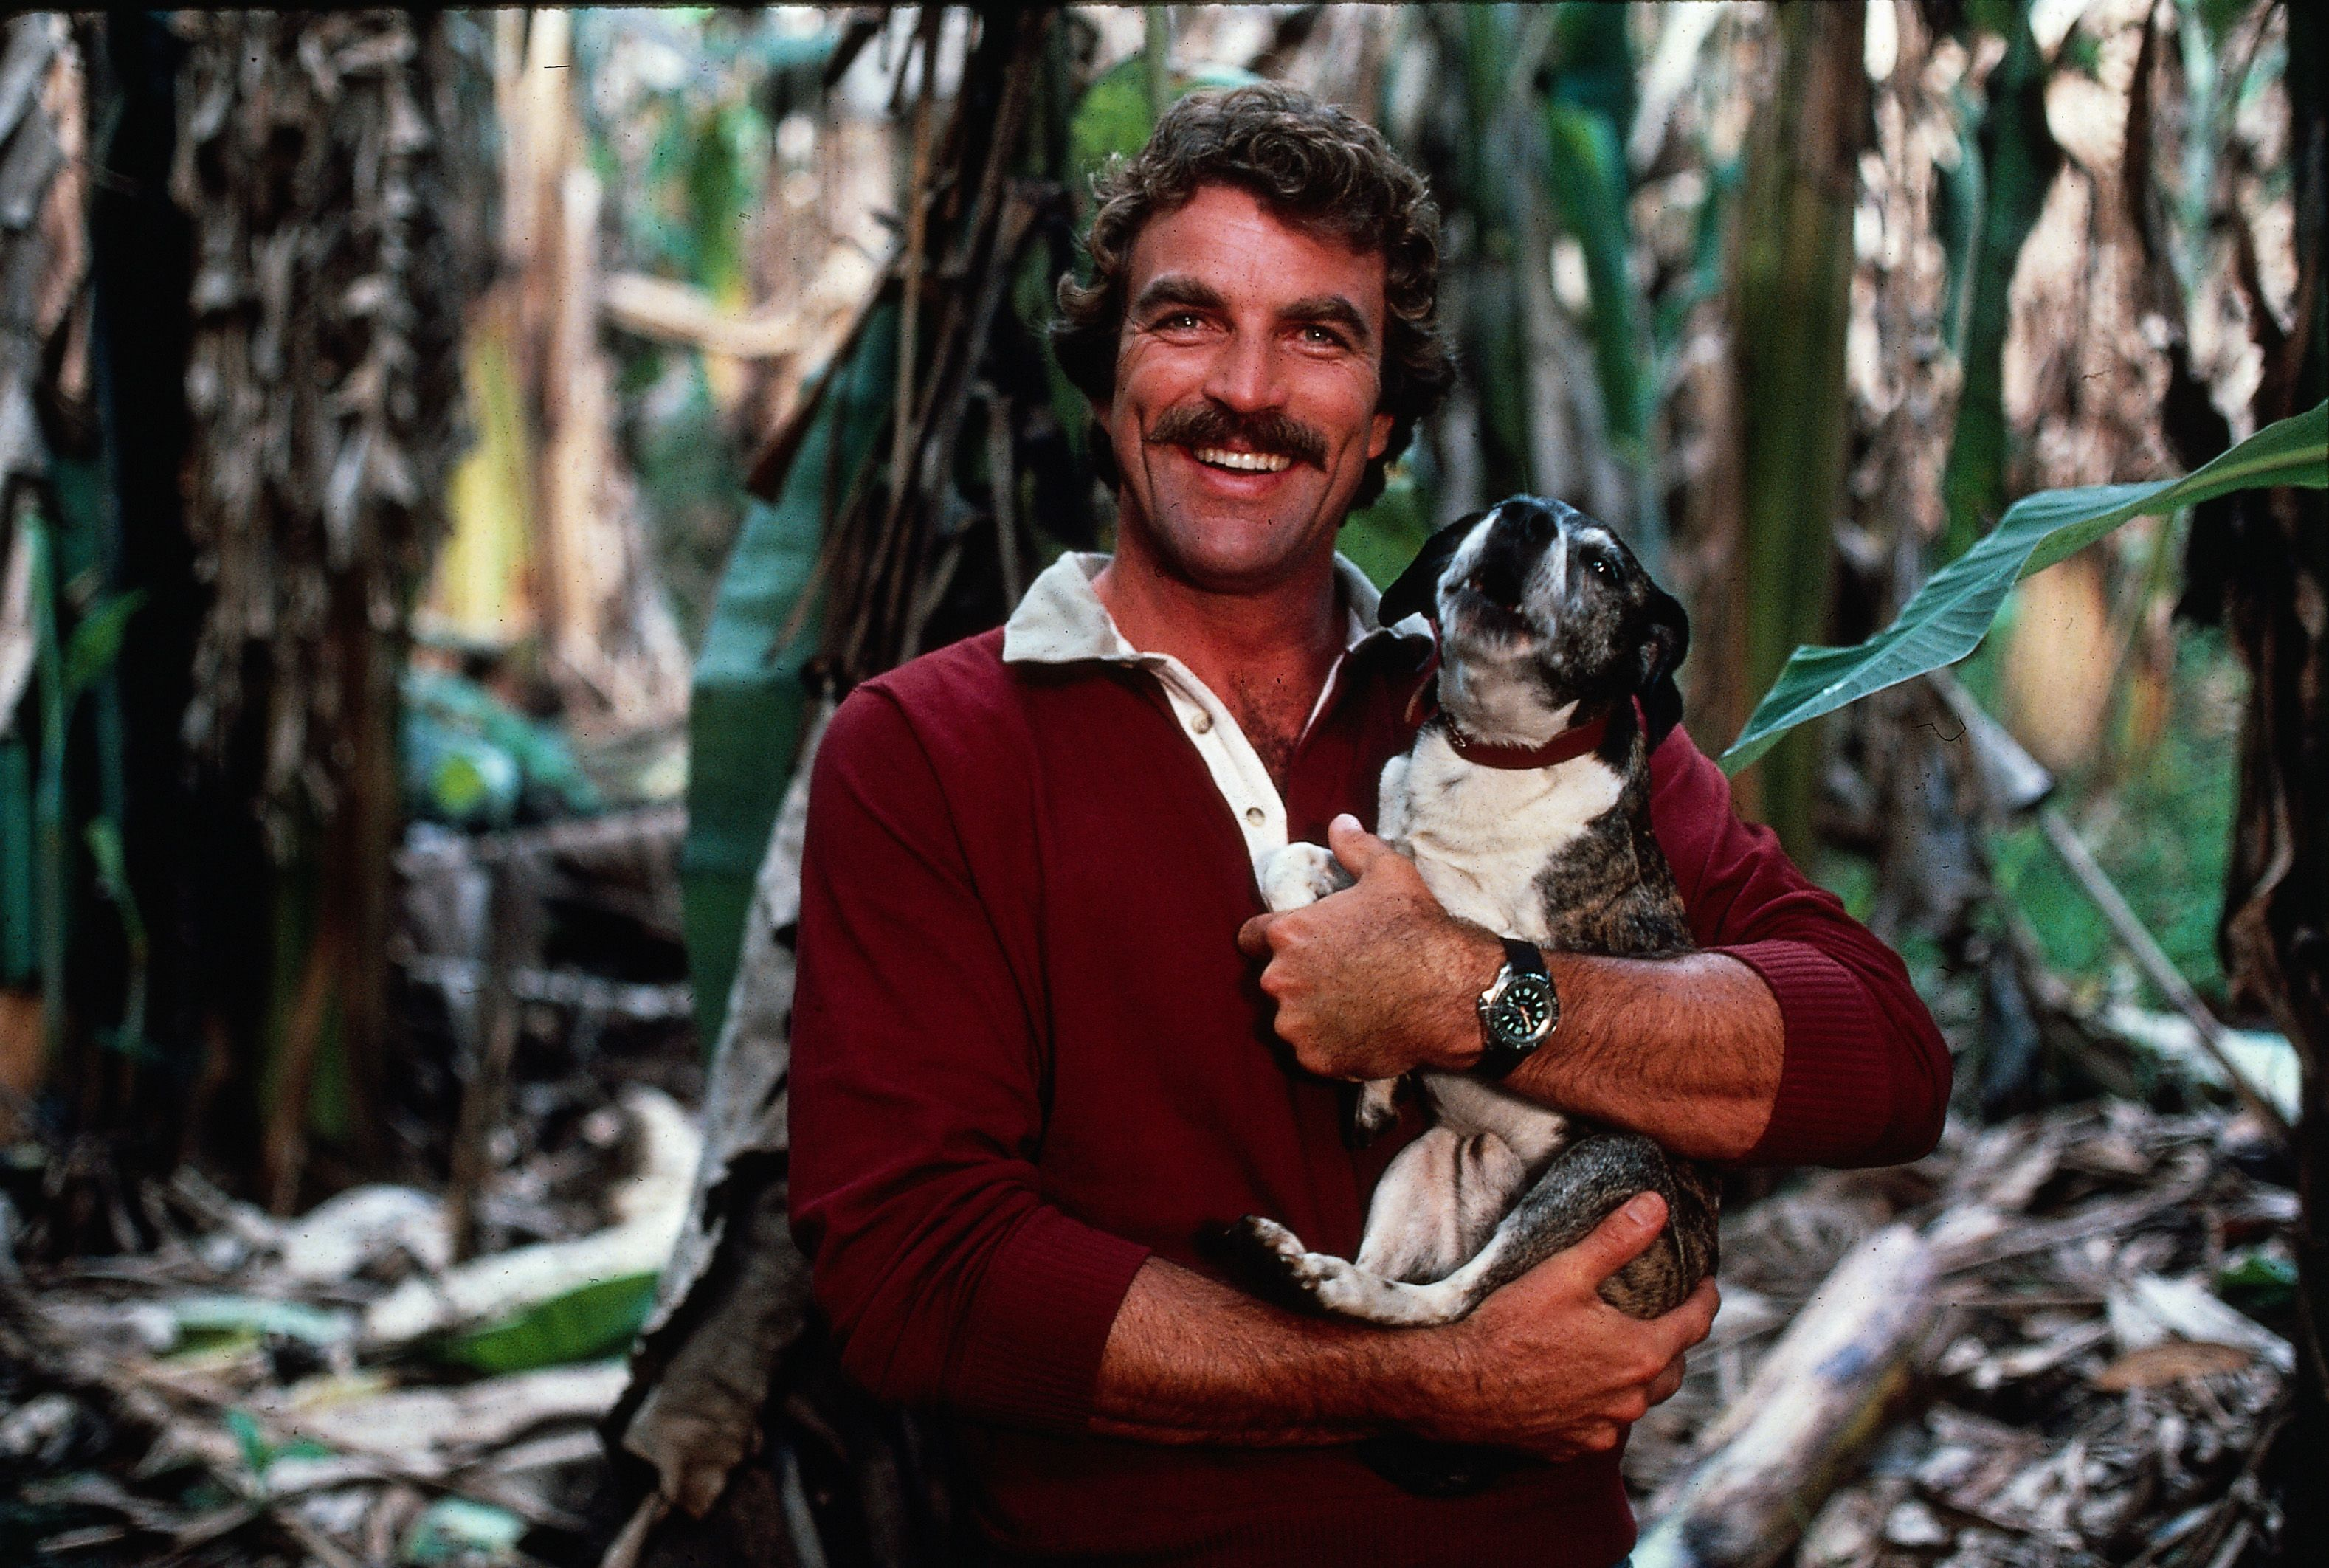 Tom Selleck, star of the CBS detective drama 'Magnum, P.I.'poses in a tropical woodland, Hawaii, 1983   Source: Getty Images